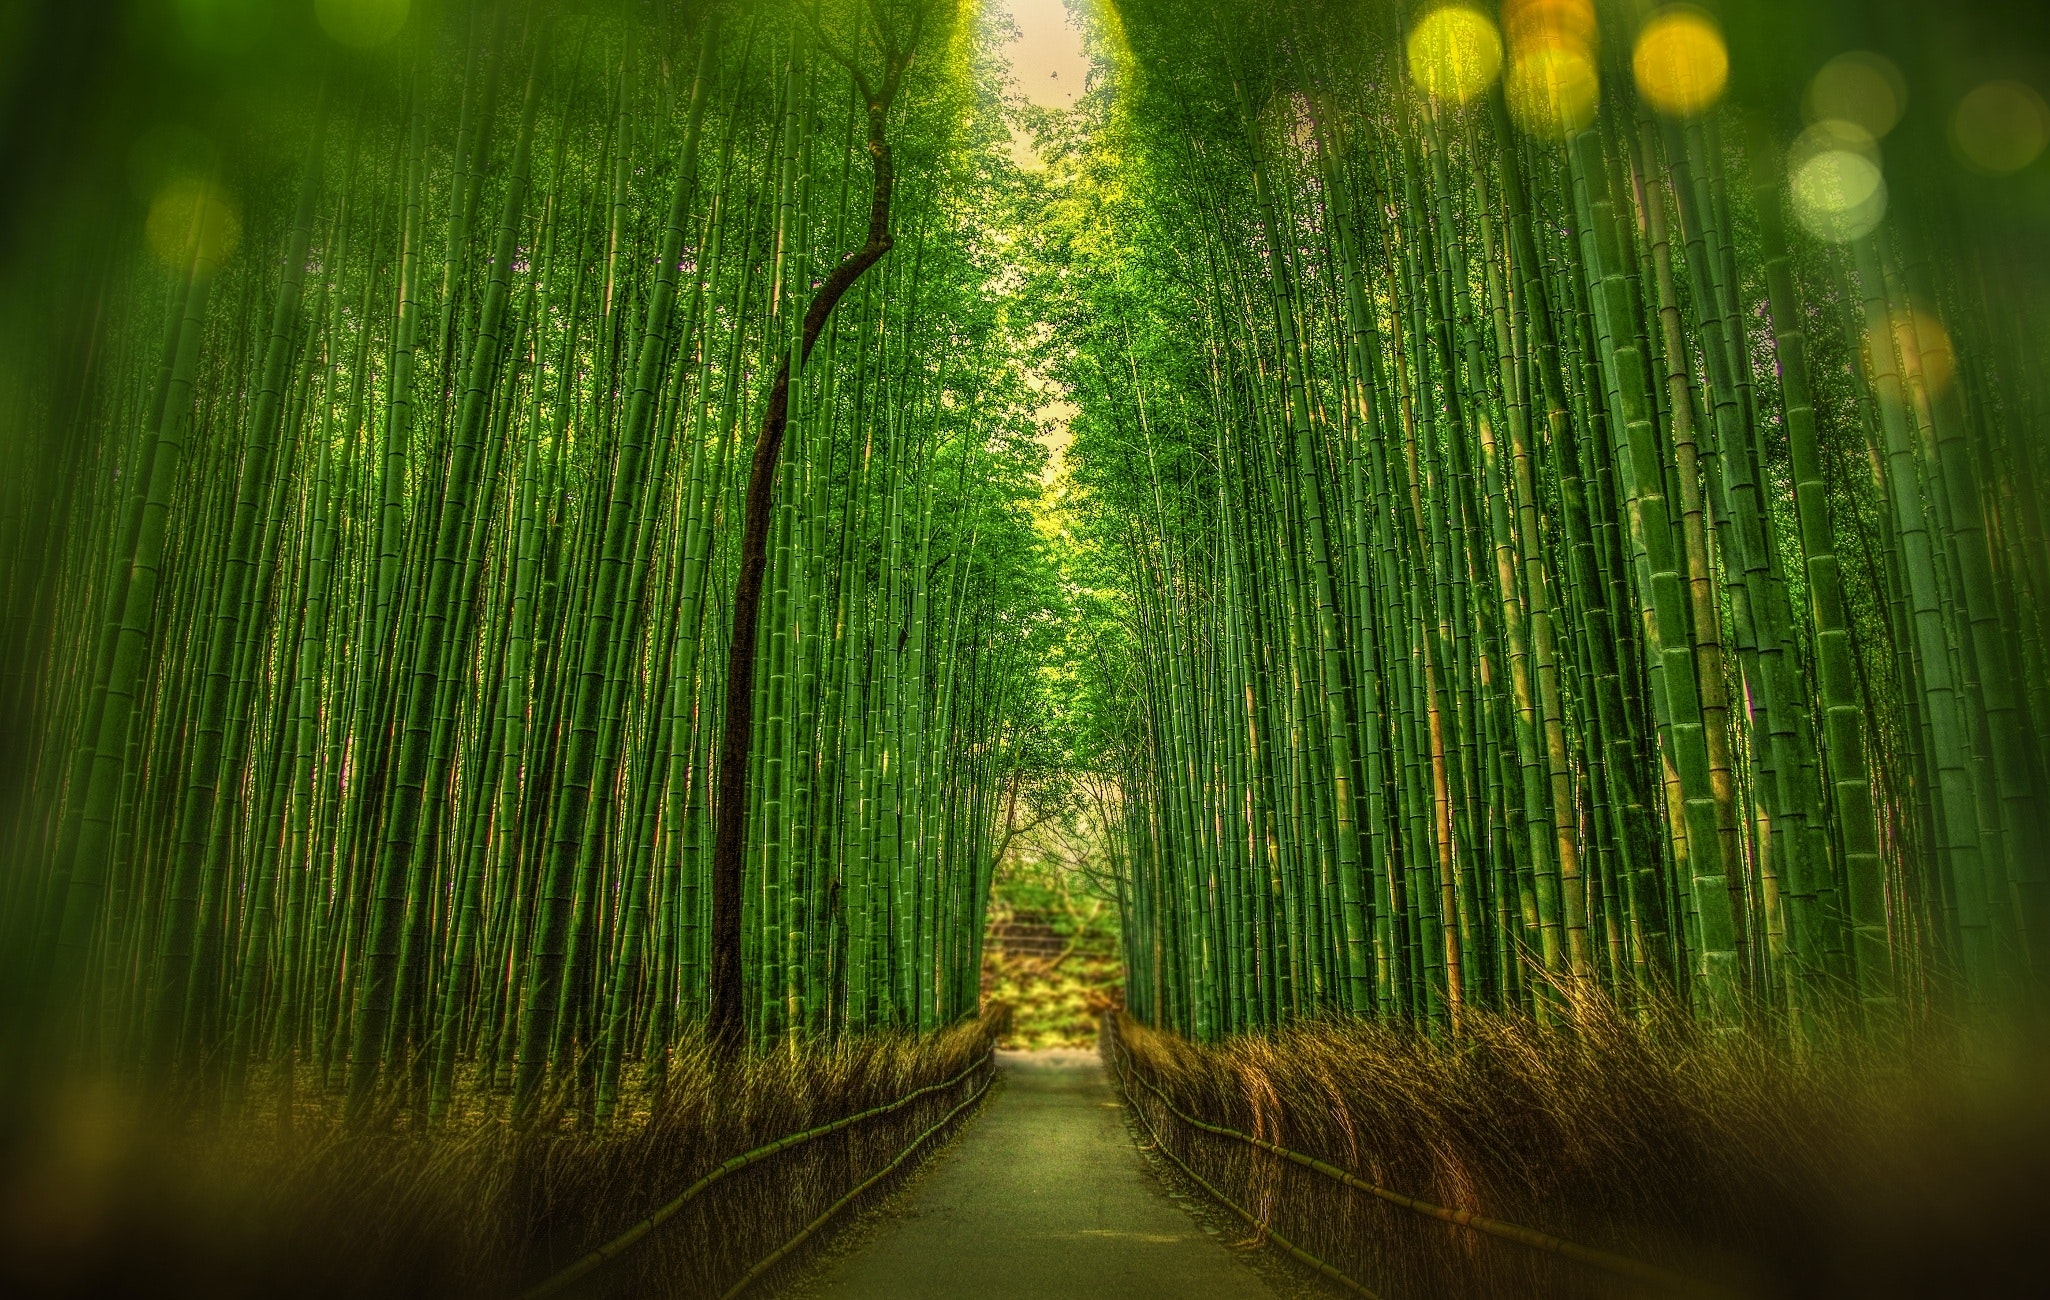 Scenic View of Bamboo Trees, Growth, Sun, Summer, Pathway, HQ Photo